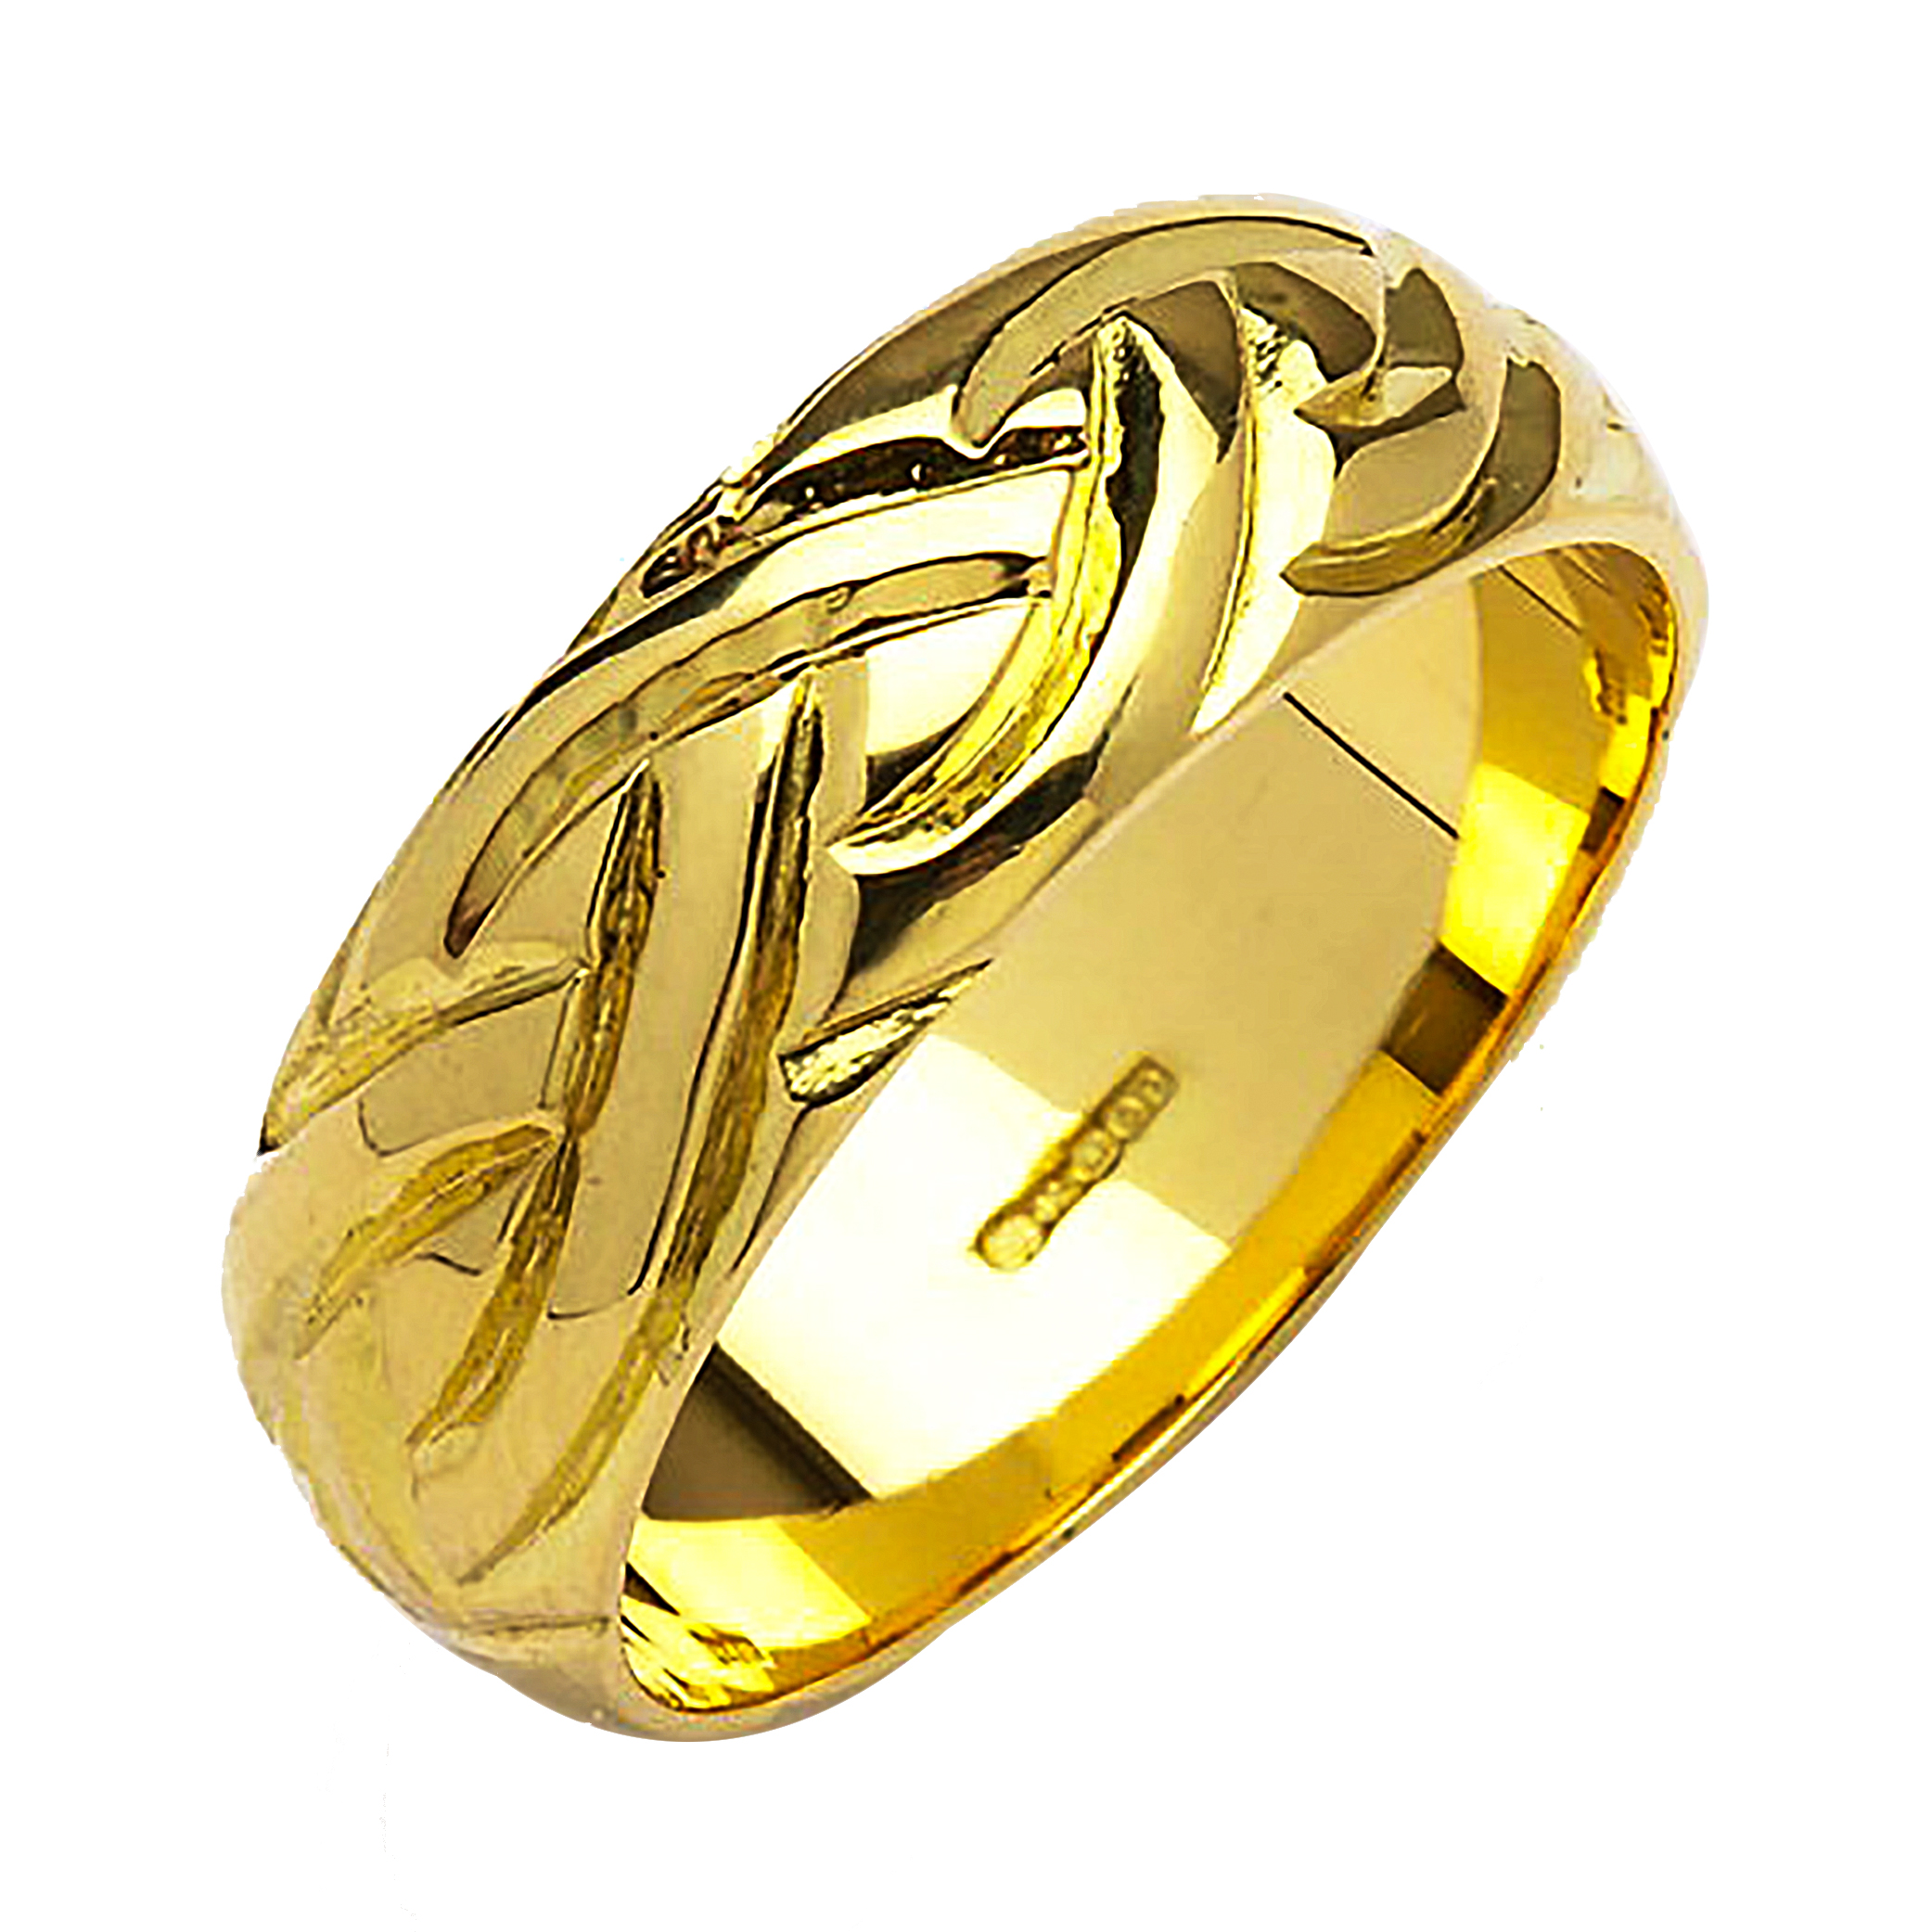 rings coloured products ring overlapping gold jewellery floral stone pid